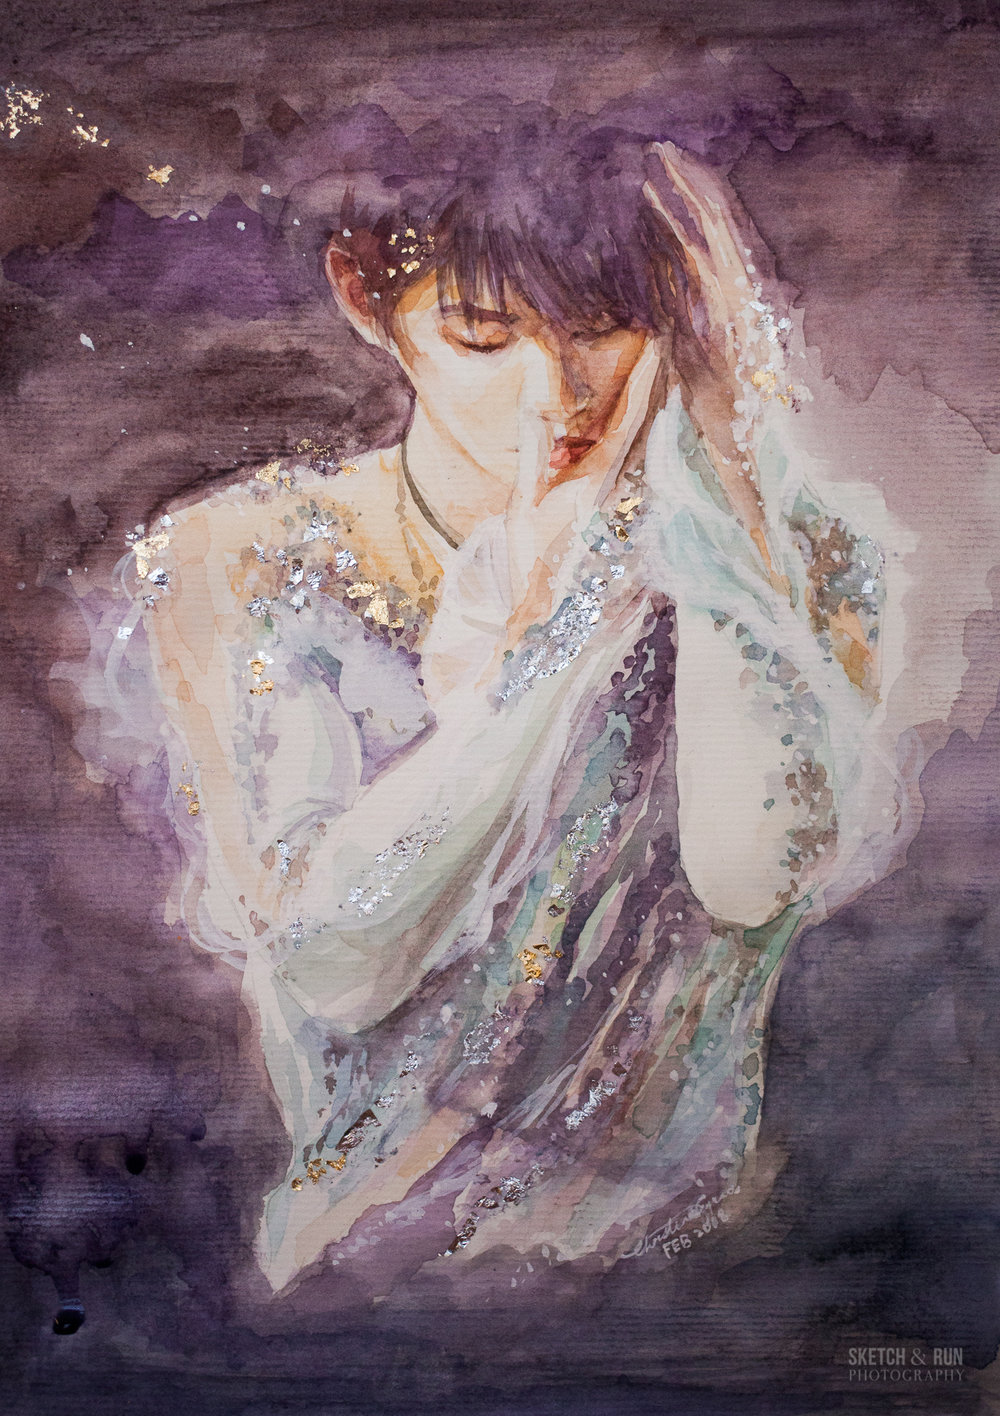 Yuzuru Hanyu , reigning mens singles Olympic Champion, World Champion and world record holder. Suffered injury during the NHK Trophy in November 2017 and will be making his comeback at the Olympics. Painting based on his 2016 World Championship exhibition performance,   Requiem of Heaven and Earth  , dedicated to the victims of the 2011 Japan Earthquake and Tsunami disaster -- Yuzuru was also a victim of the disaster himself. At the time of the skate in Boston, he was  hiding a lisfranc ligament injury  and won silver. He said later that he skated the performance not knowing if he would be able to skate competitively again.